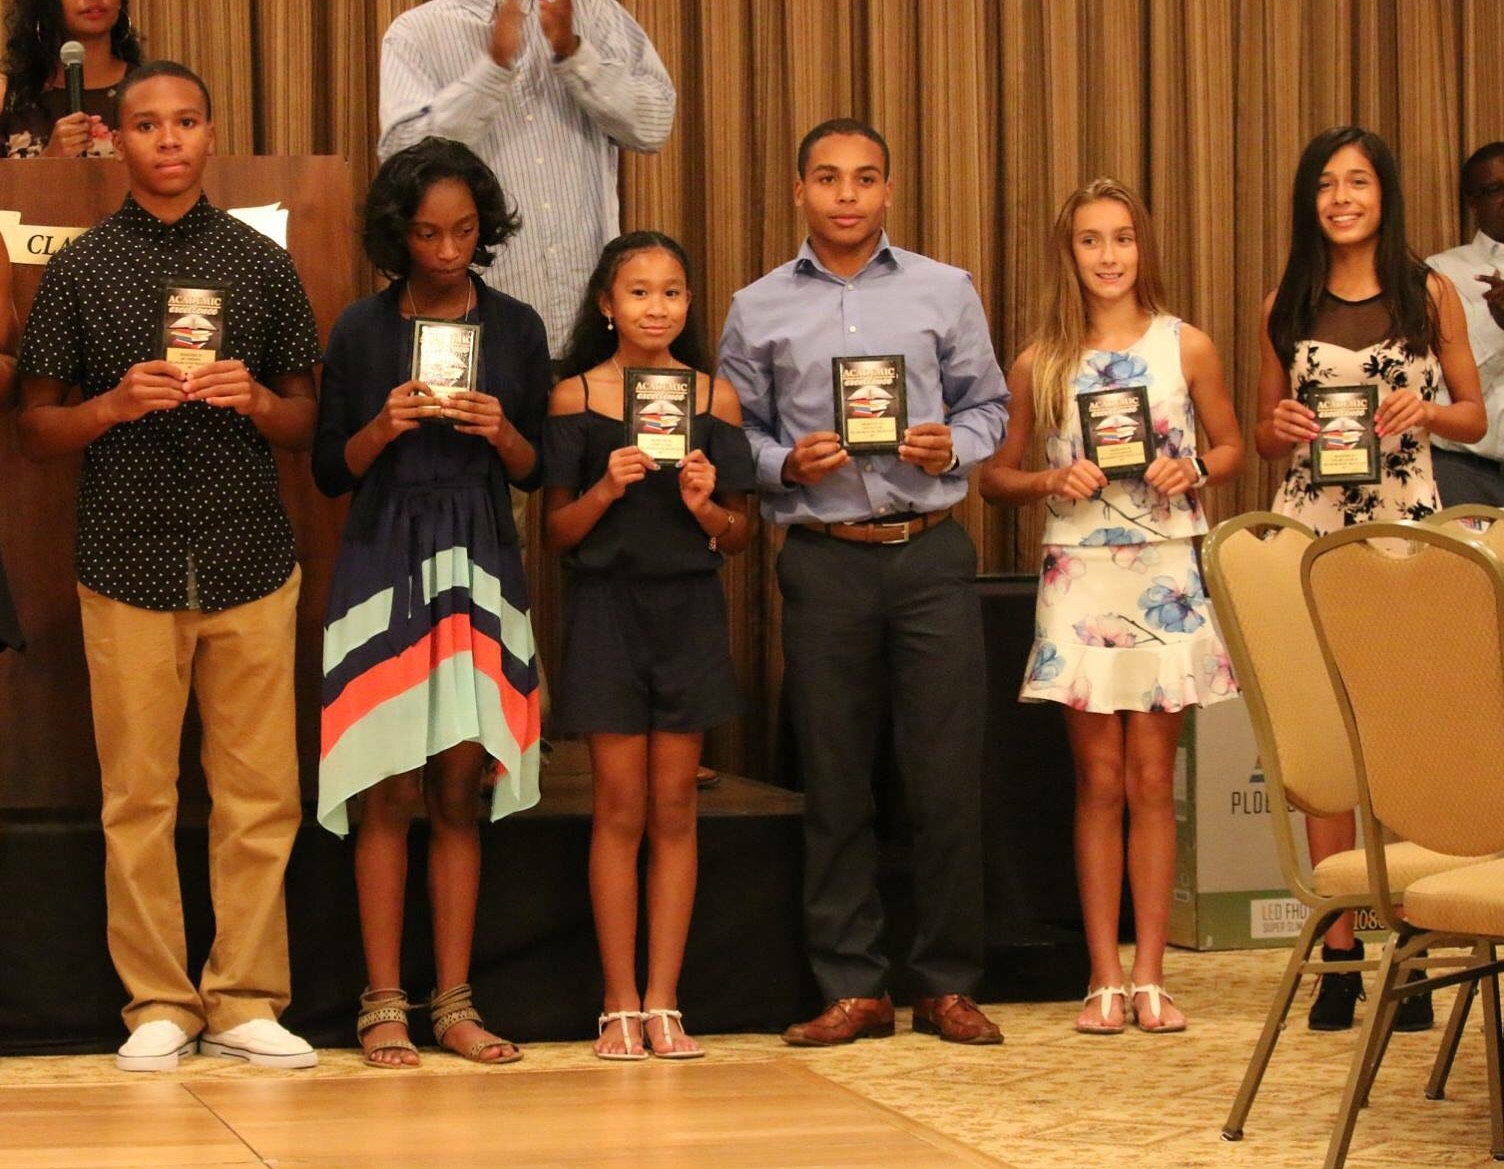 Ric Johnson , Kailah Crews, Yasmina Gall, Zion Glover , Julianna Balon , Judy McLaughlin - Athletes boasting a 4.0 grade point average and higher